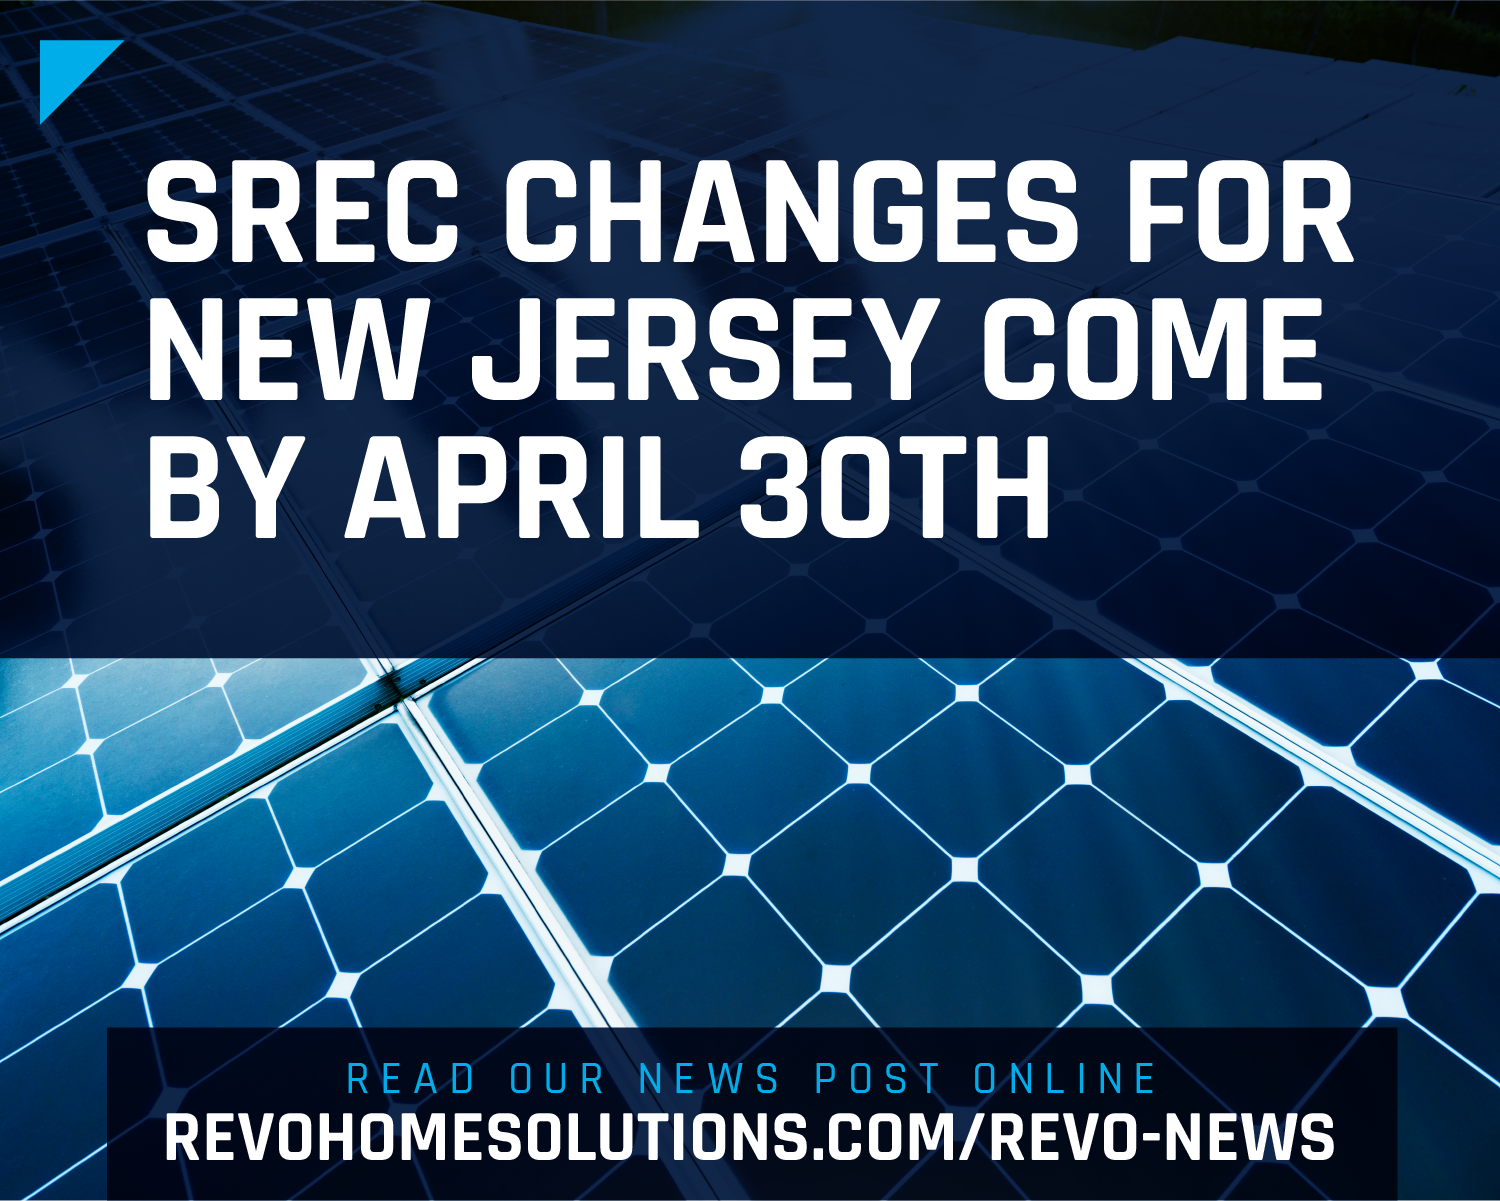 SREC Changes for New Jersey May Come by April 30th